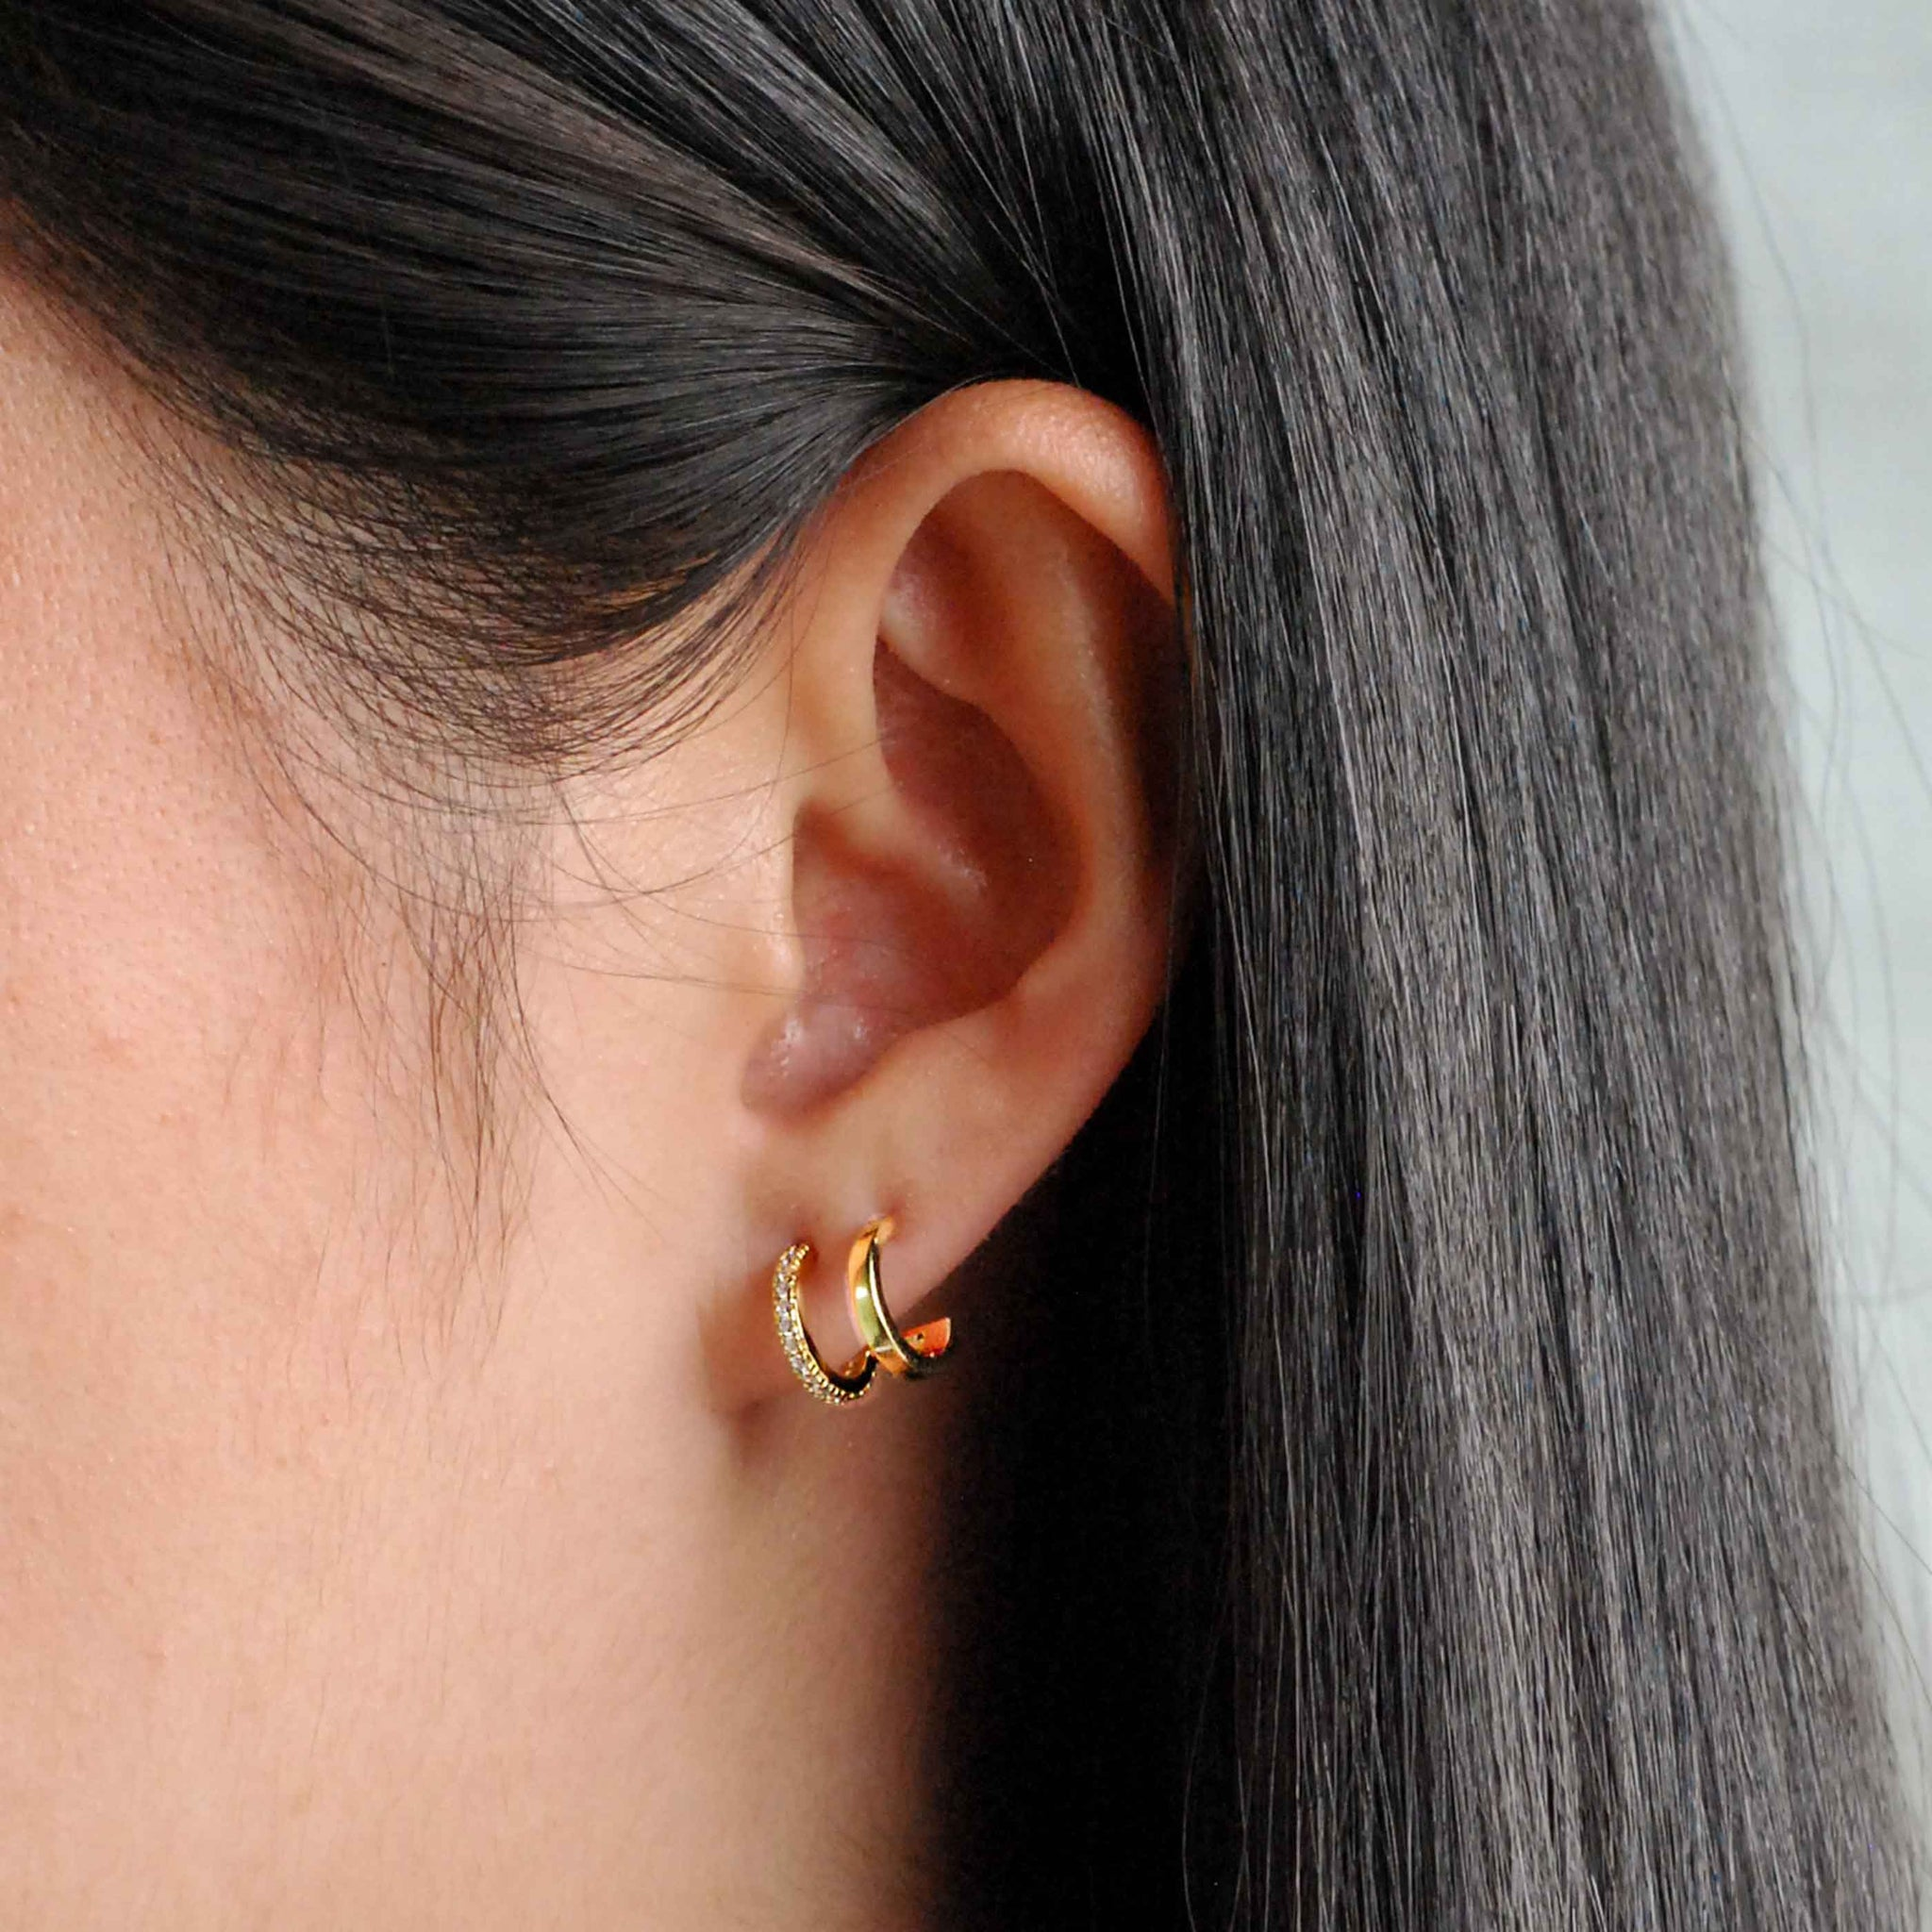 Illusion Stud Earrings in Gold worn shot